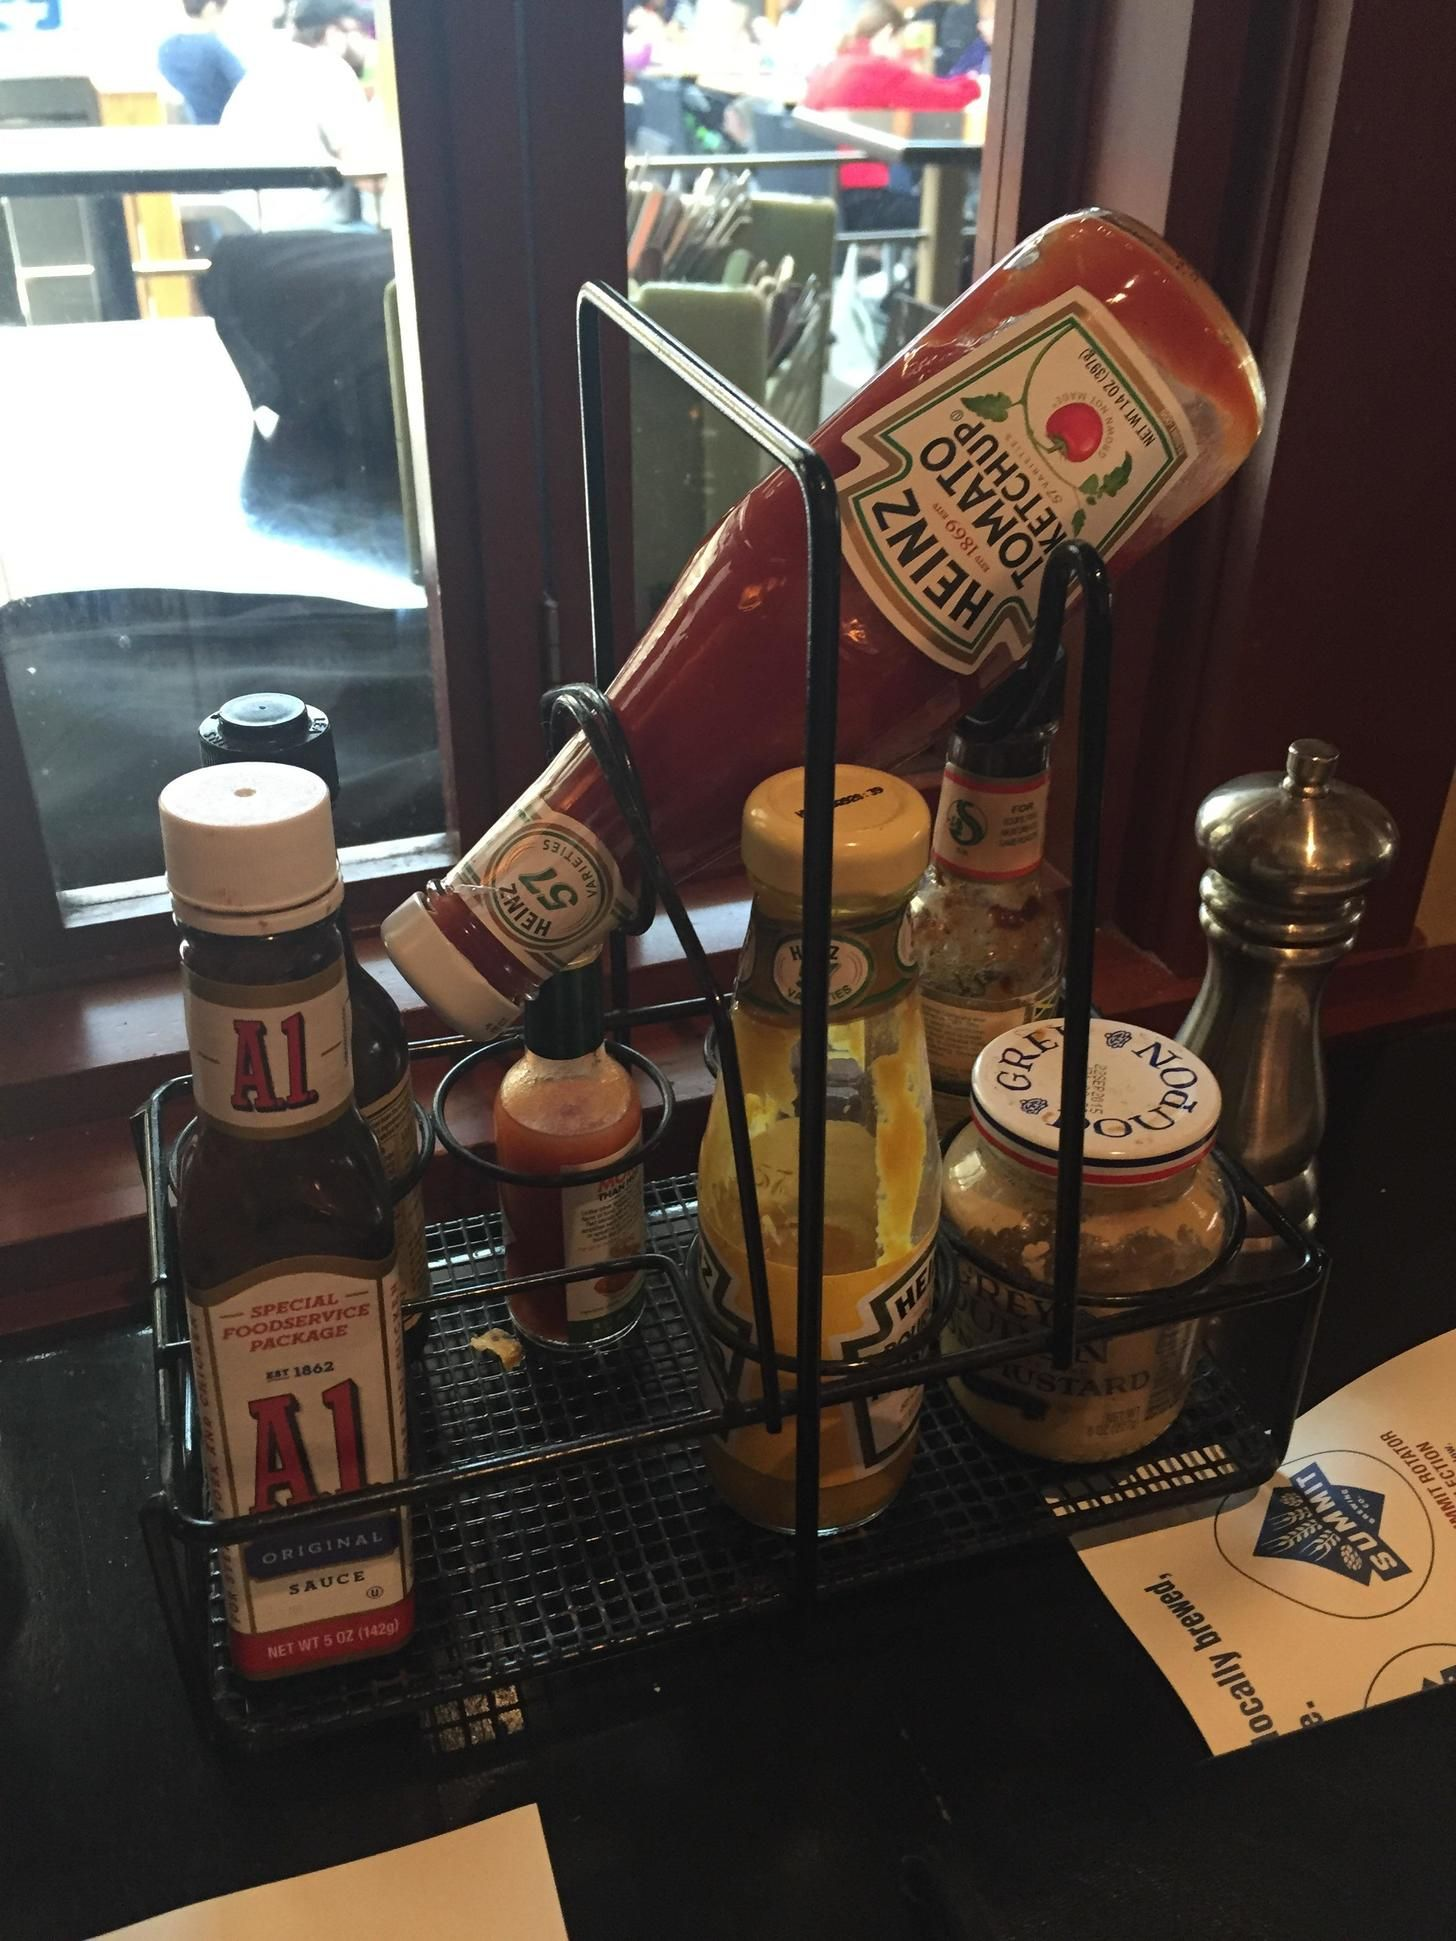 This Restaurant Tabletop Condiment Caddy Has A Special Holder To - Table top caddies for restaurants